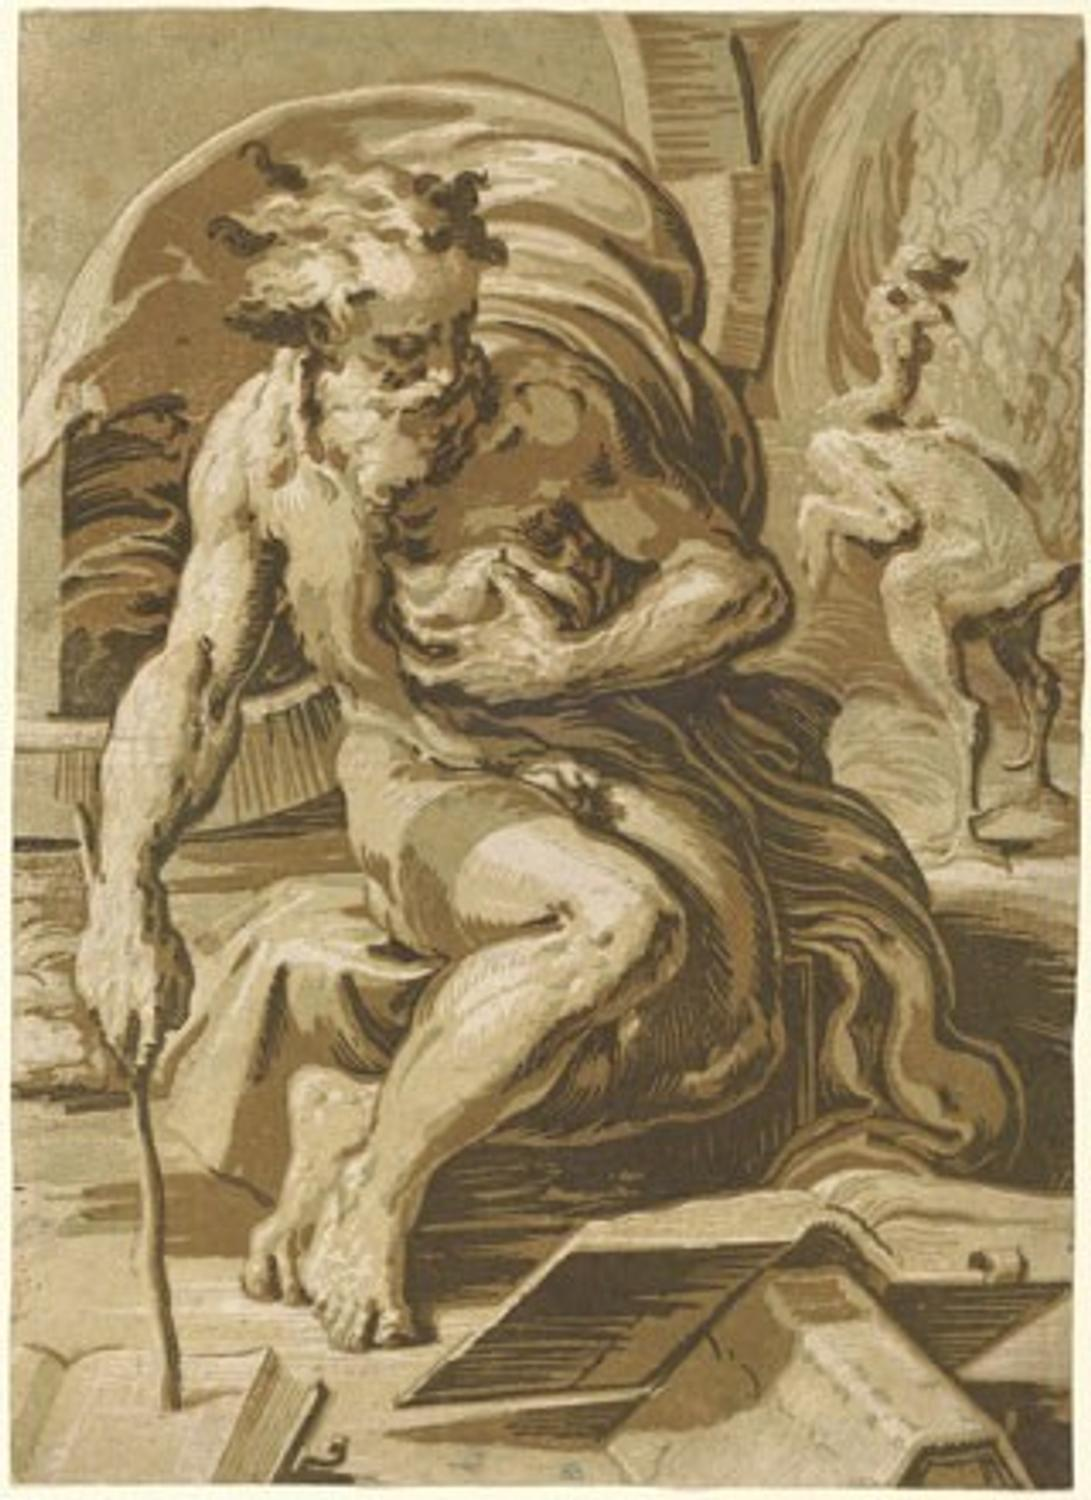 first comprehensive exhibition of chiaroscuro woodcuts